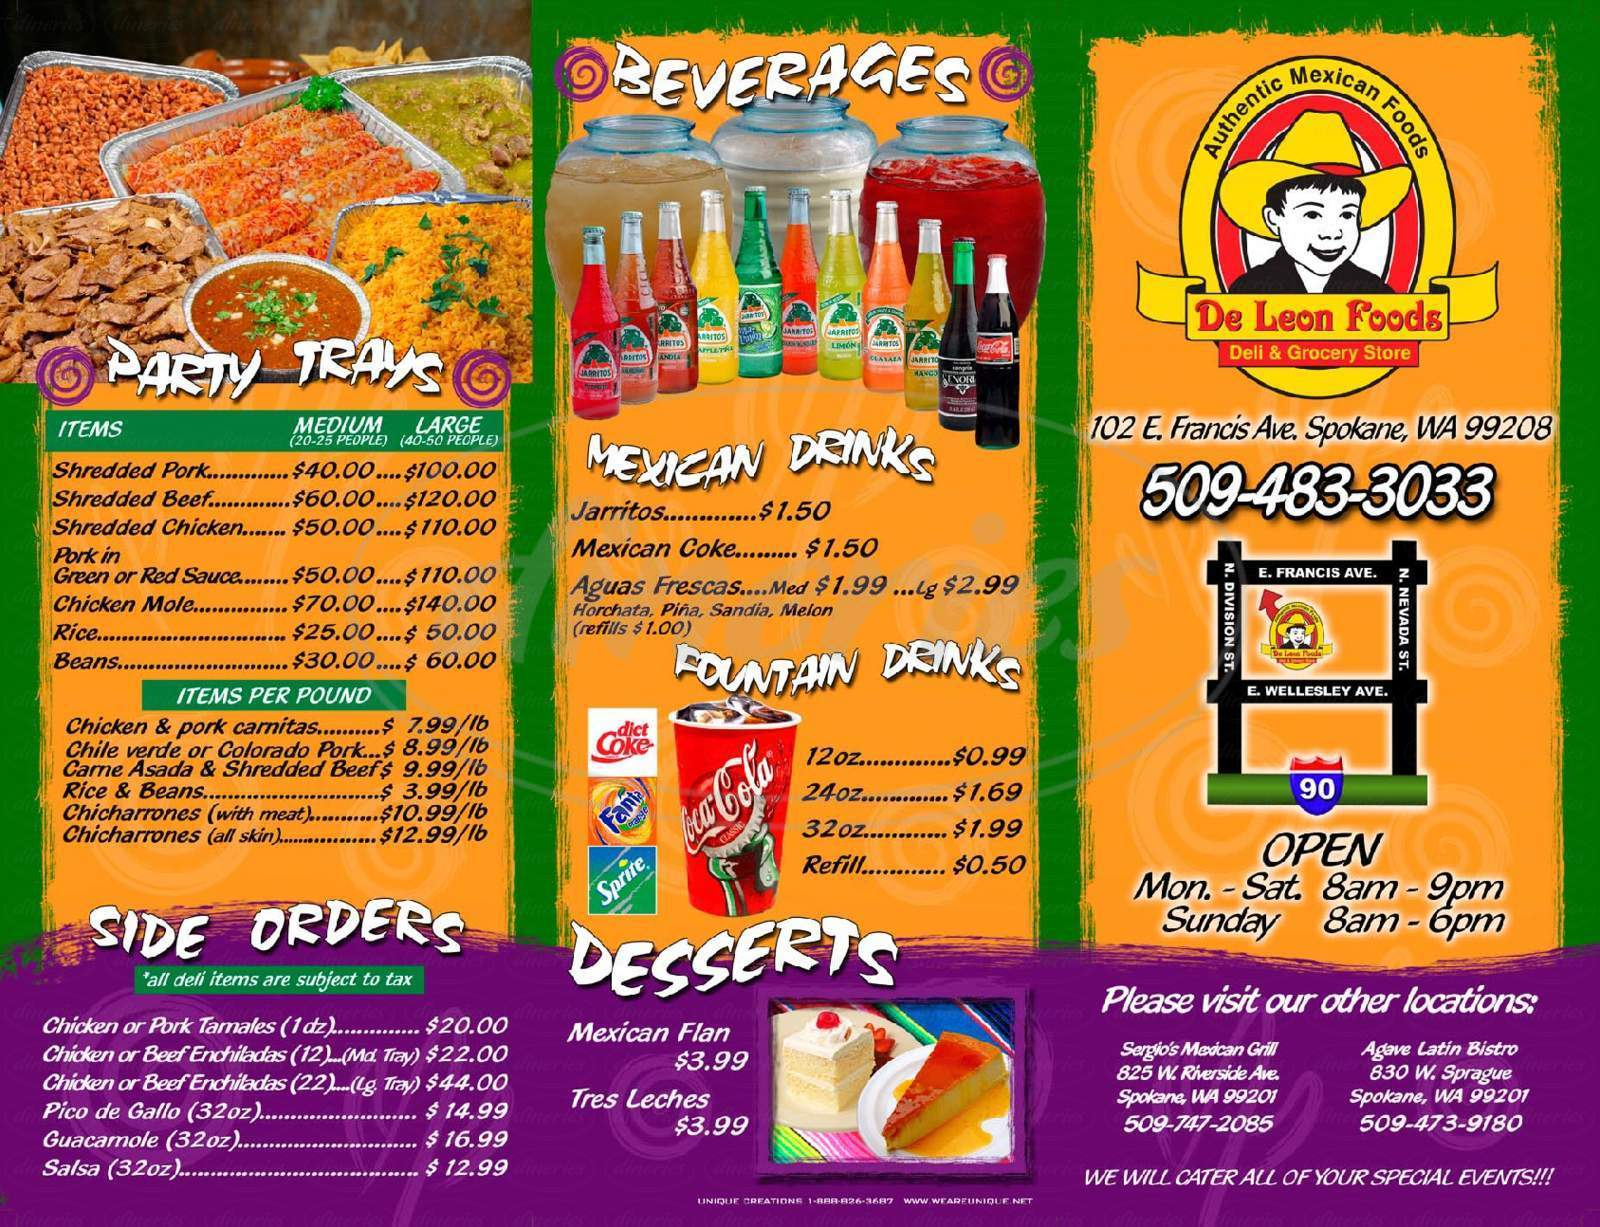 menu for De Leon Foods